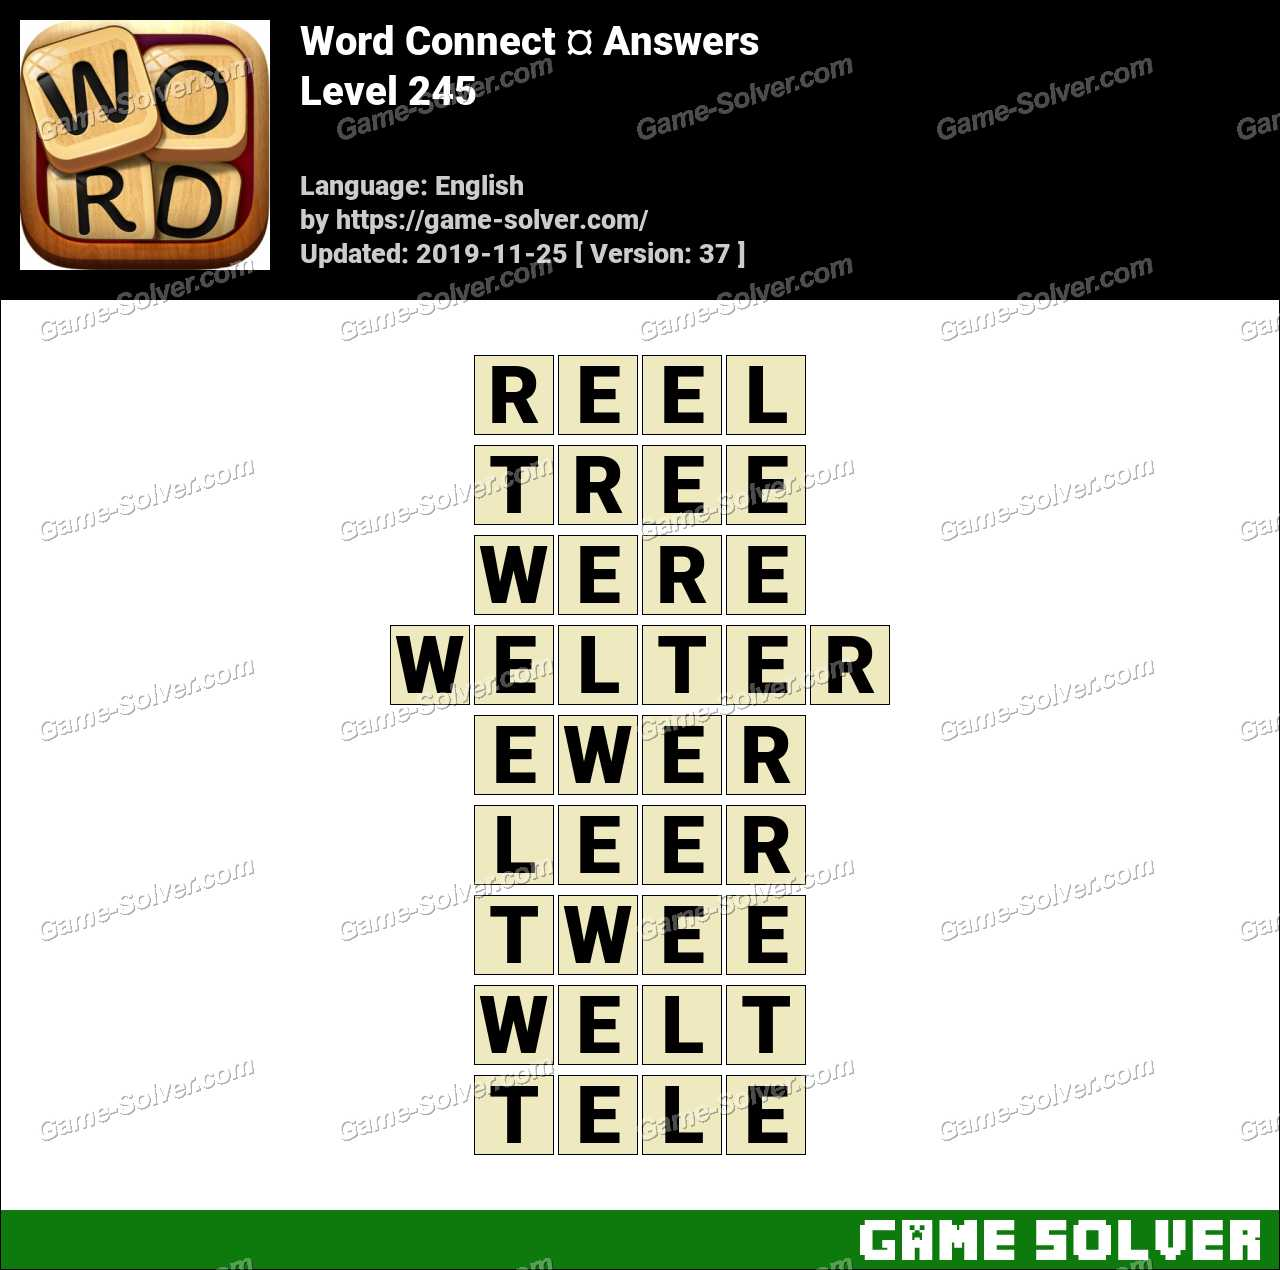 Word Connect Level 245 Answers